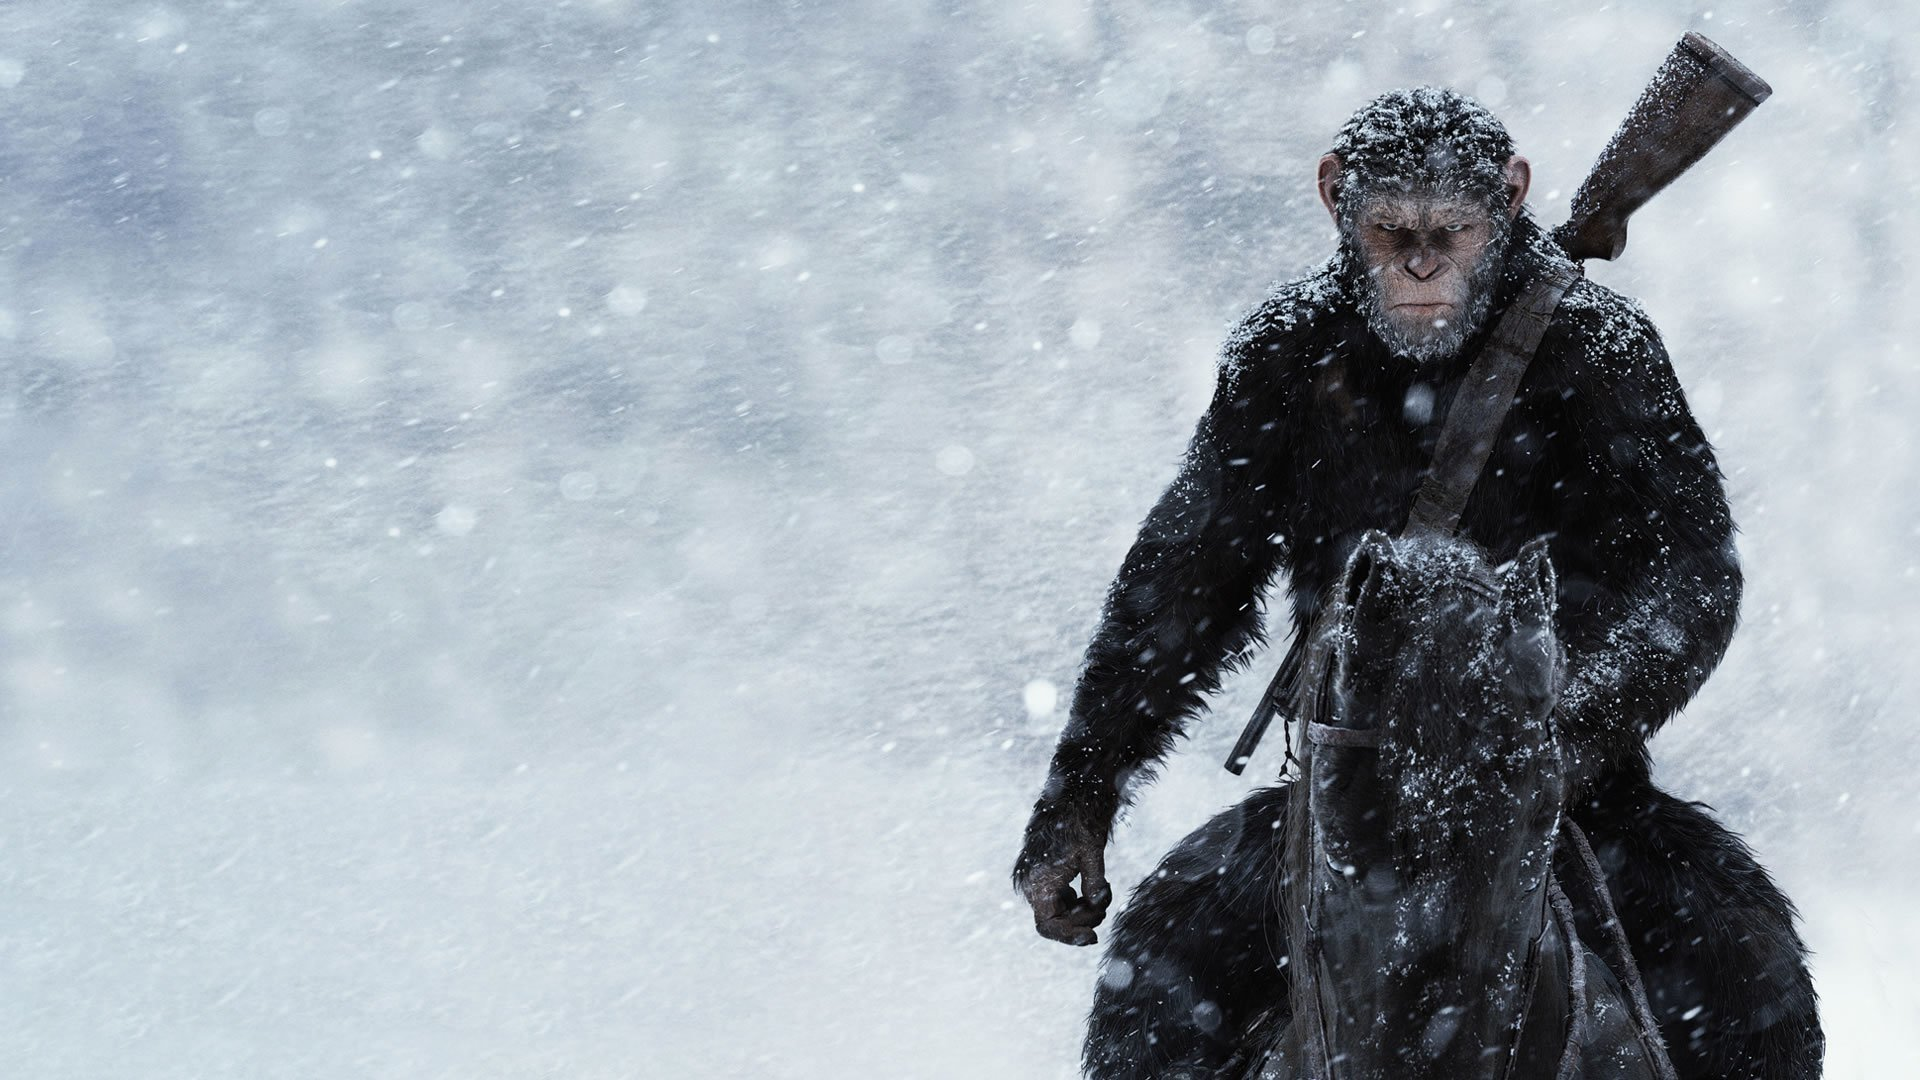 Hd Wallpaper War For The Planet Of The Apes Official Poster